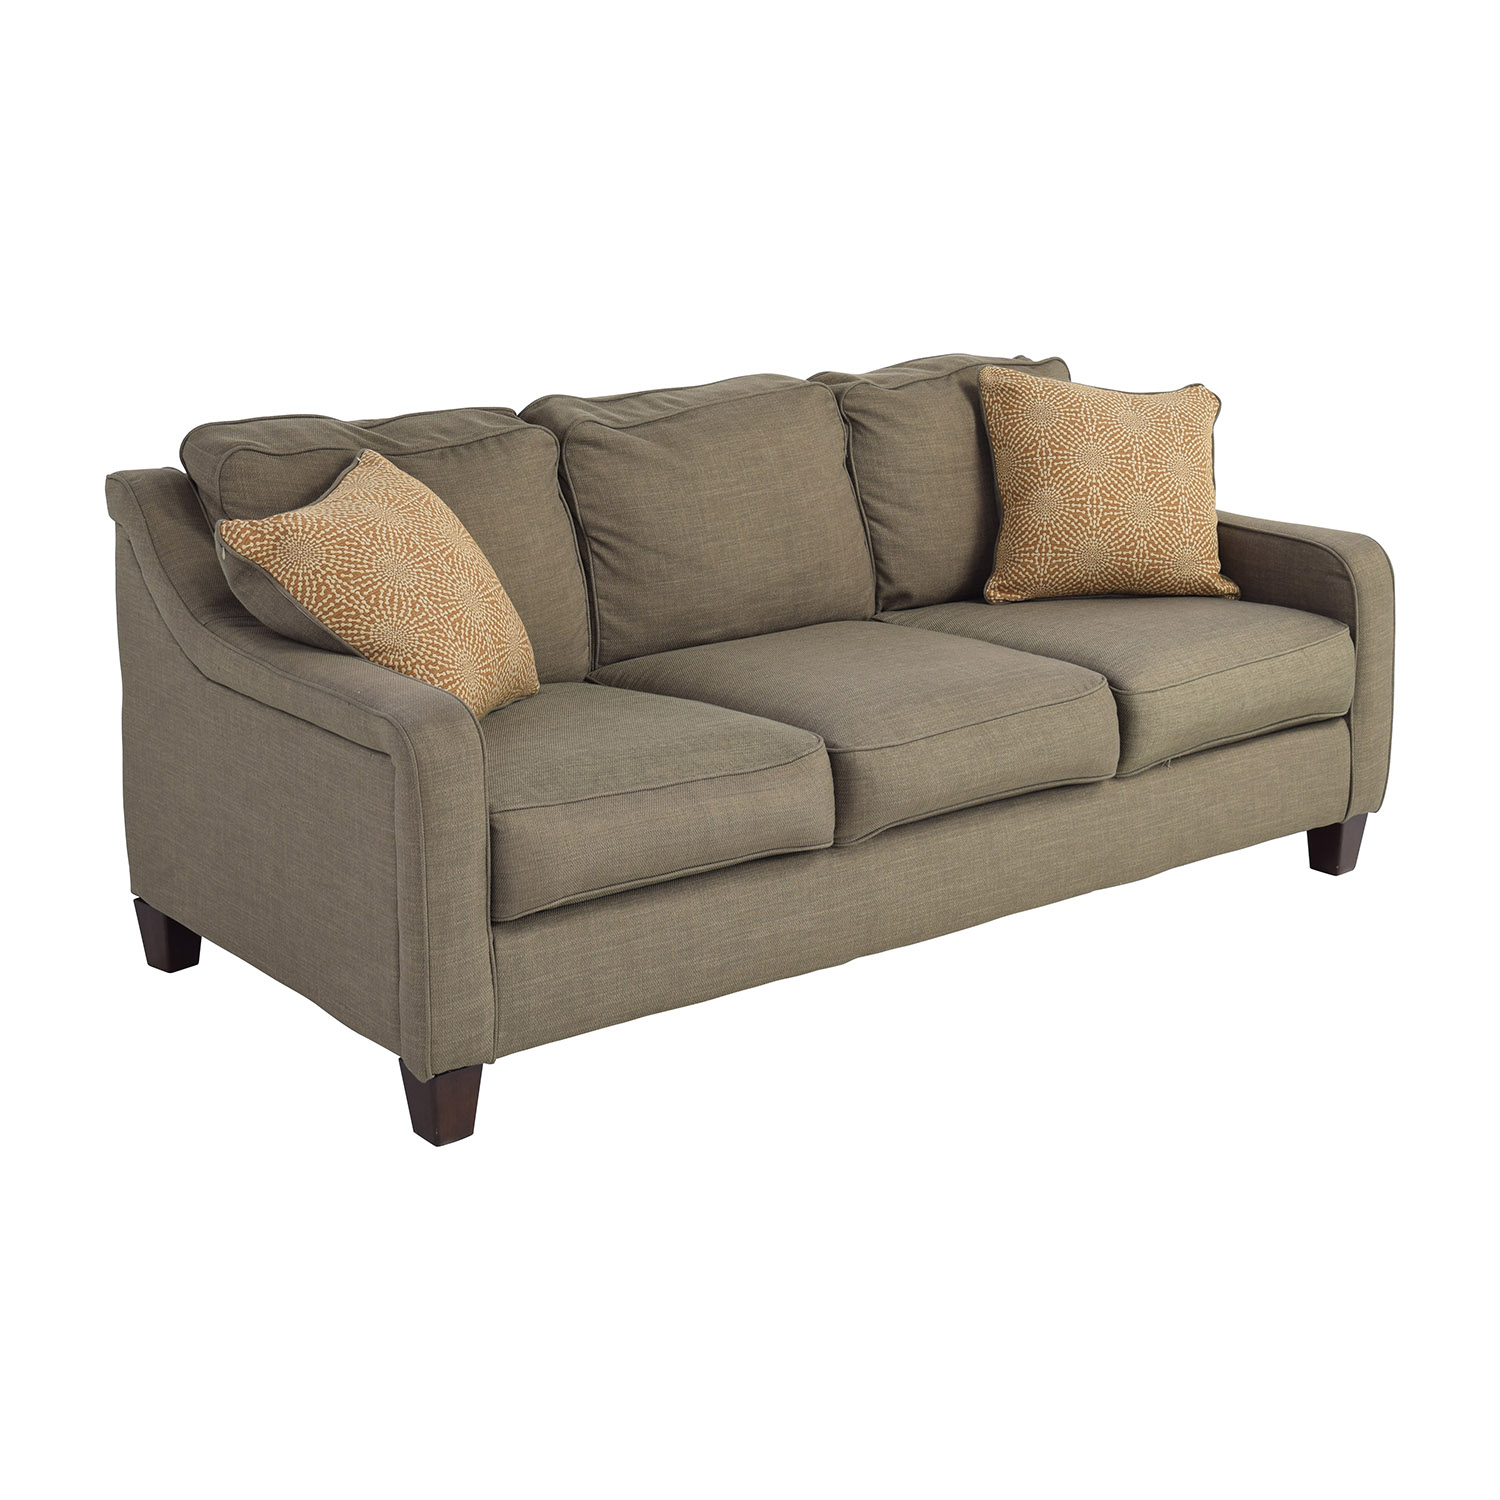 Loveseat Sofa Bed Ashley Furniture: Ashley Furniture Ashley Furniture Brown Couch